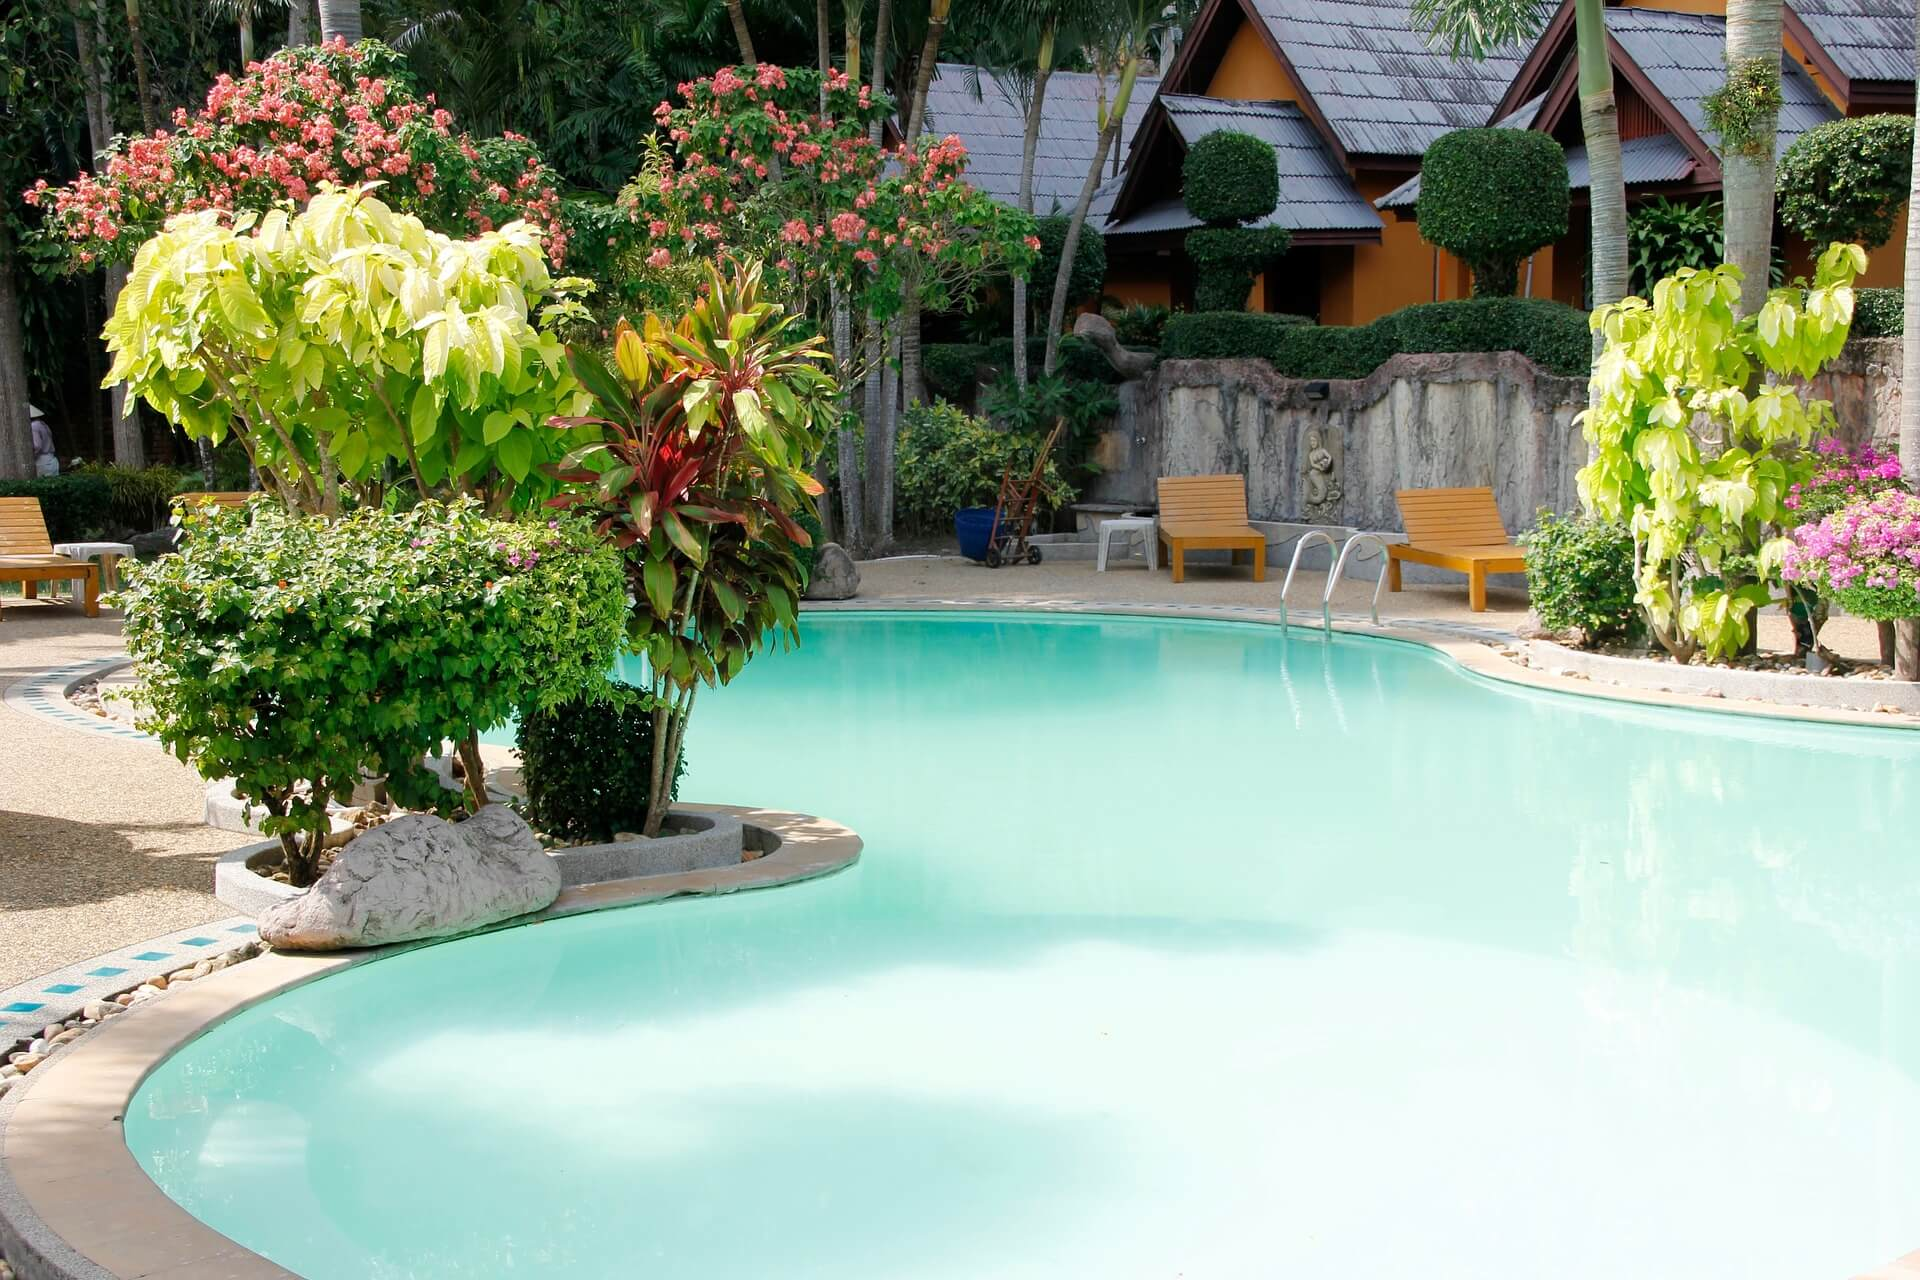 Selecting the right pool fence interior design design news and architecture trends - Swimming pool fencing options consider ...